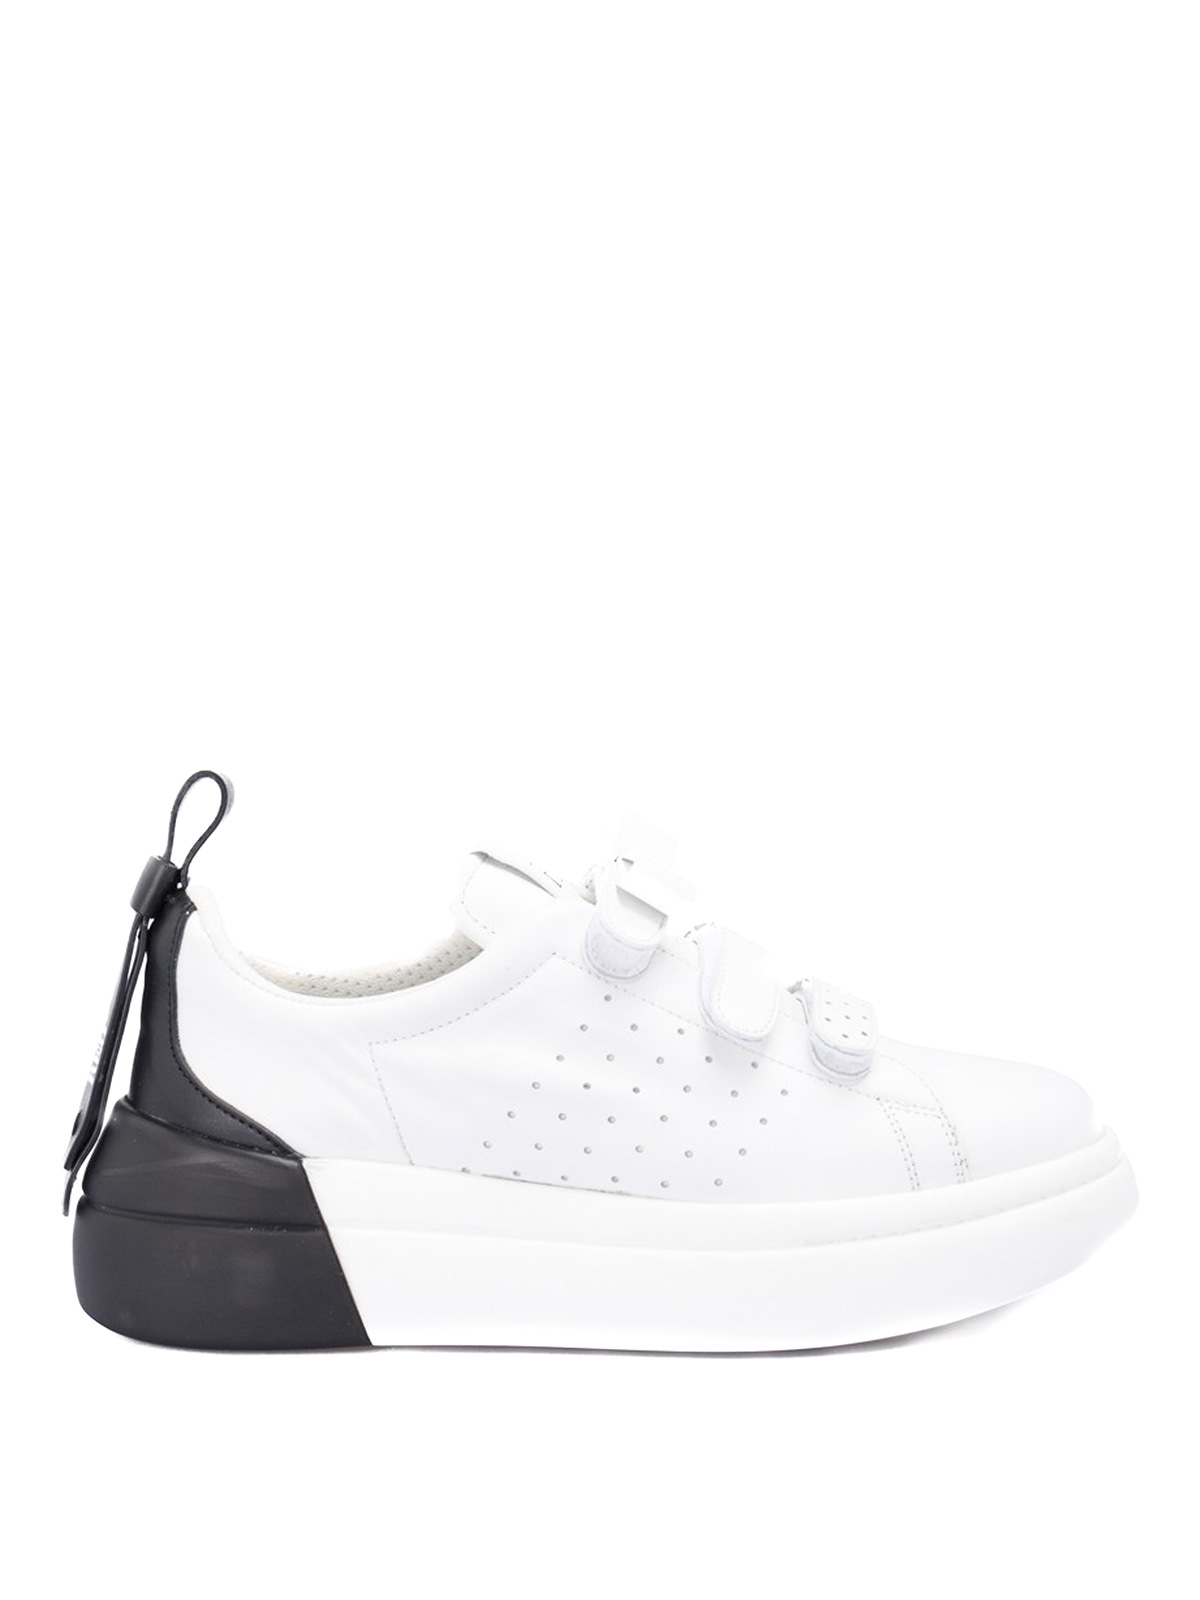 Red Valentino TWO-TONE CALF LEATHER SNEAKERS